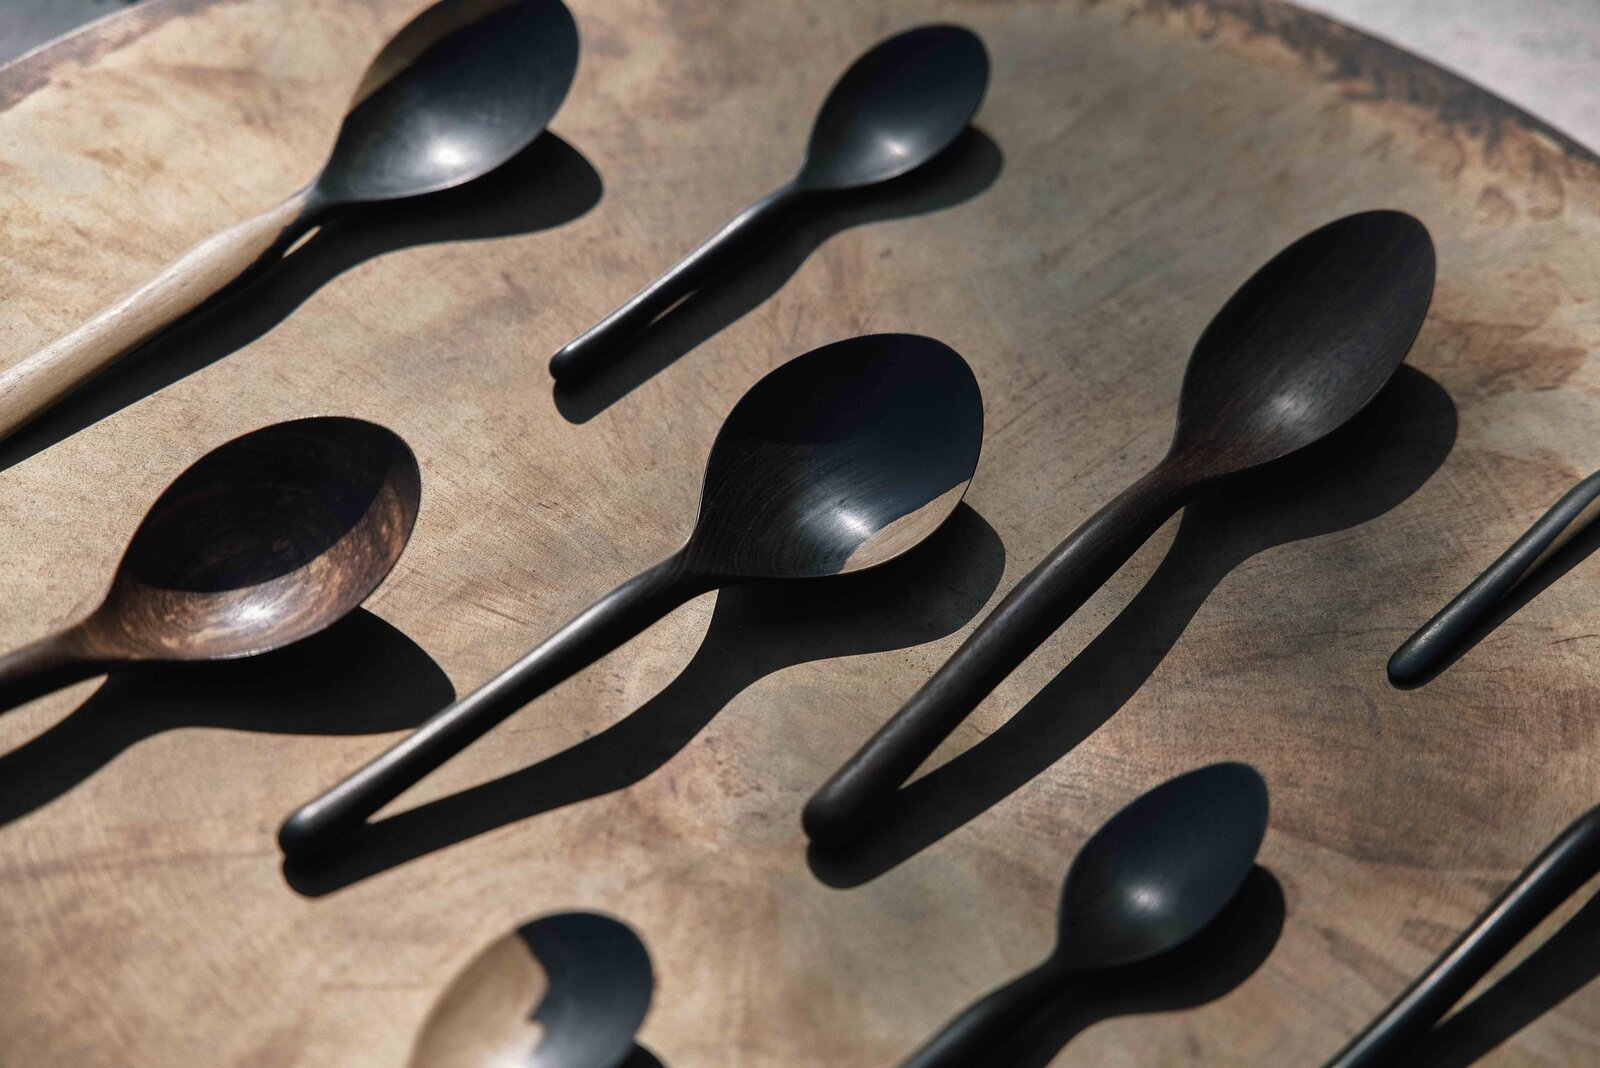 Pieces of discarded blackwood with white markings—supposedly undesirable features for mainstream wood products—lend a rough-hewn character to the handcrafted spoons.  Photo 9 of 11 in Obakki's New Collection of Handcrafted Bowls and Spoons Reveals the Beauty of Slow Design